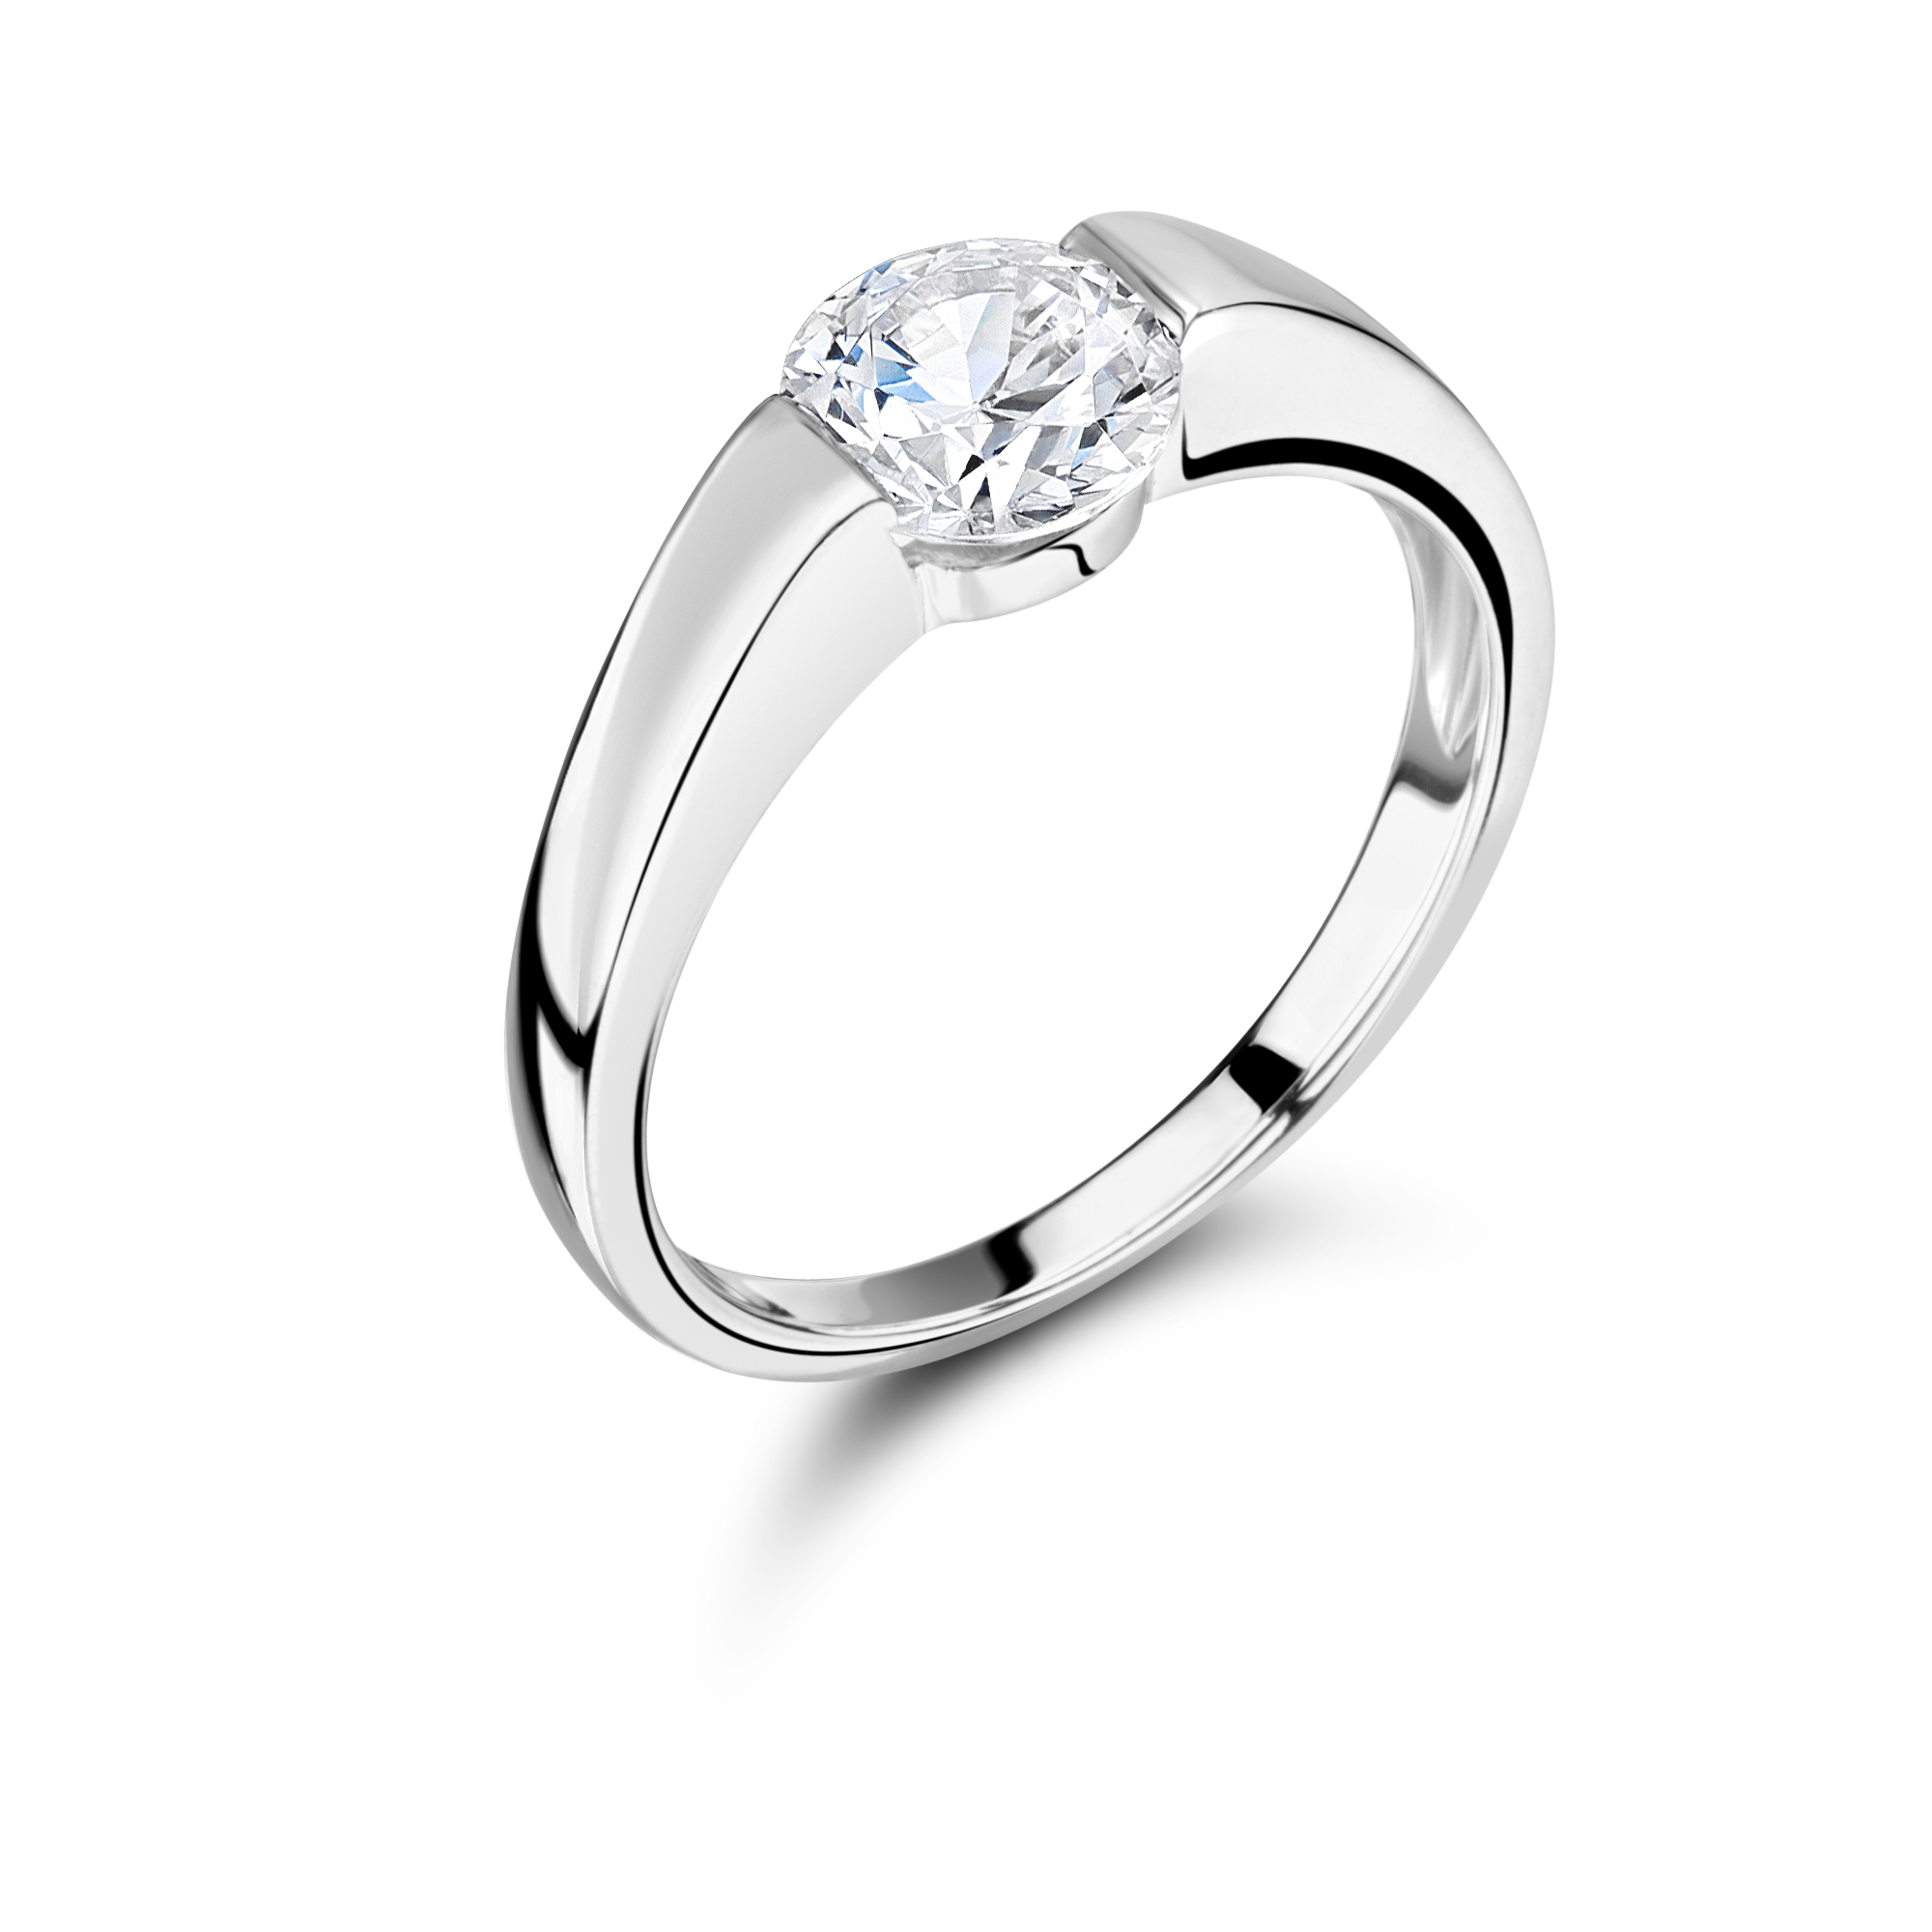 ladies cut rocket ring engagement diamond jewellery ct brilliant stones white side gold johnny rings jrj